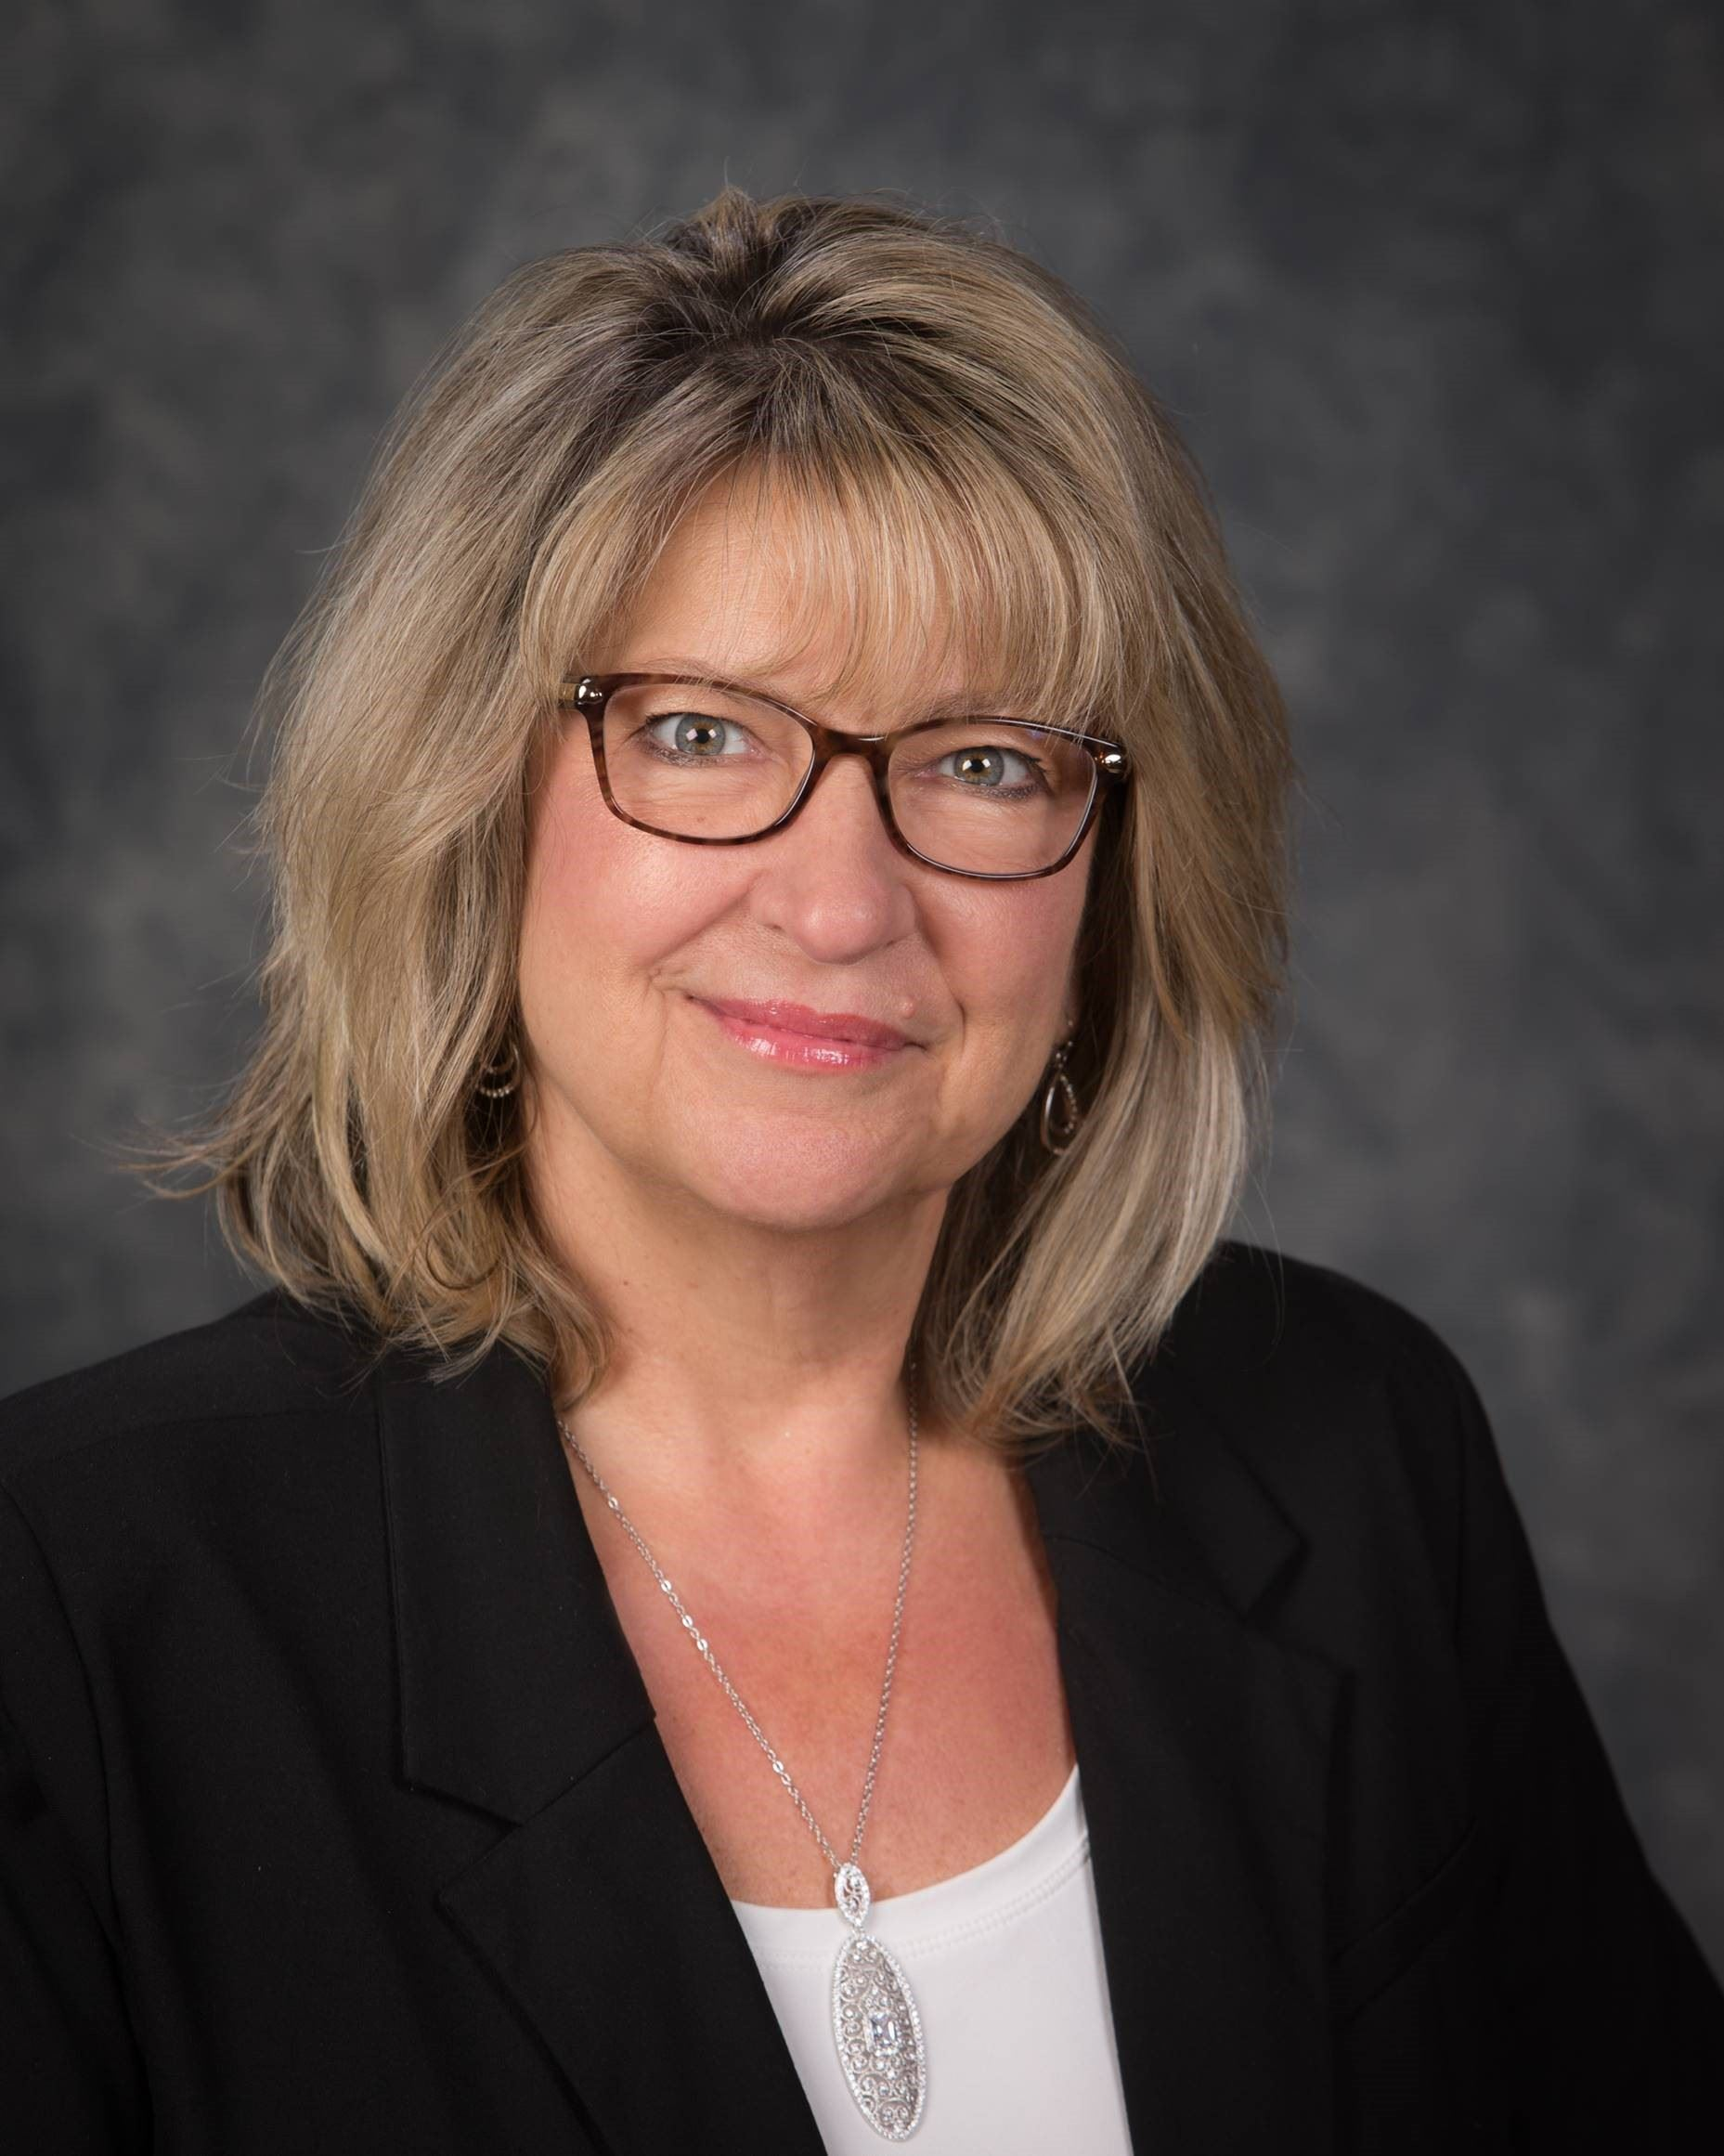 Headshot of Finance Director Renee Mullen